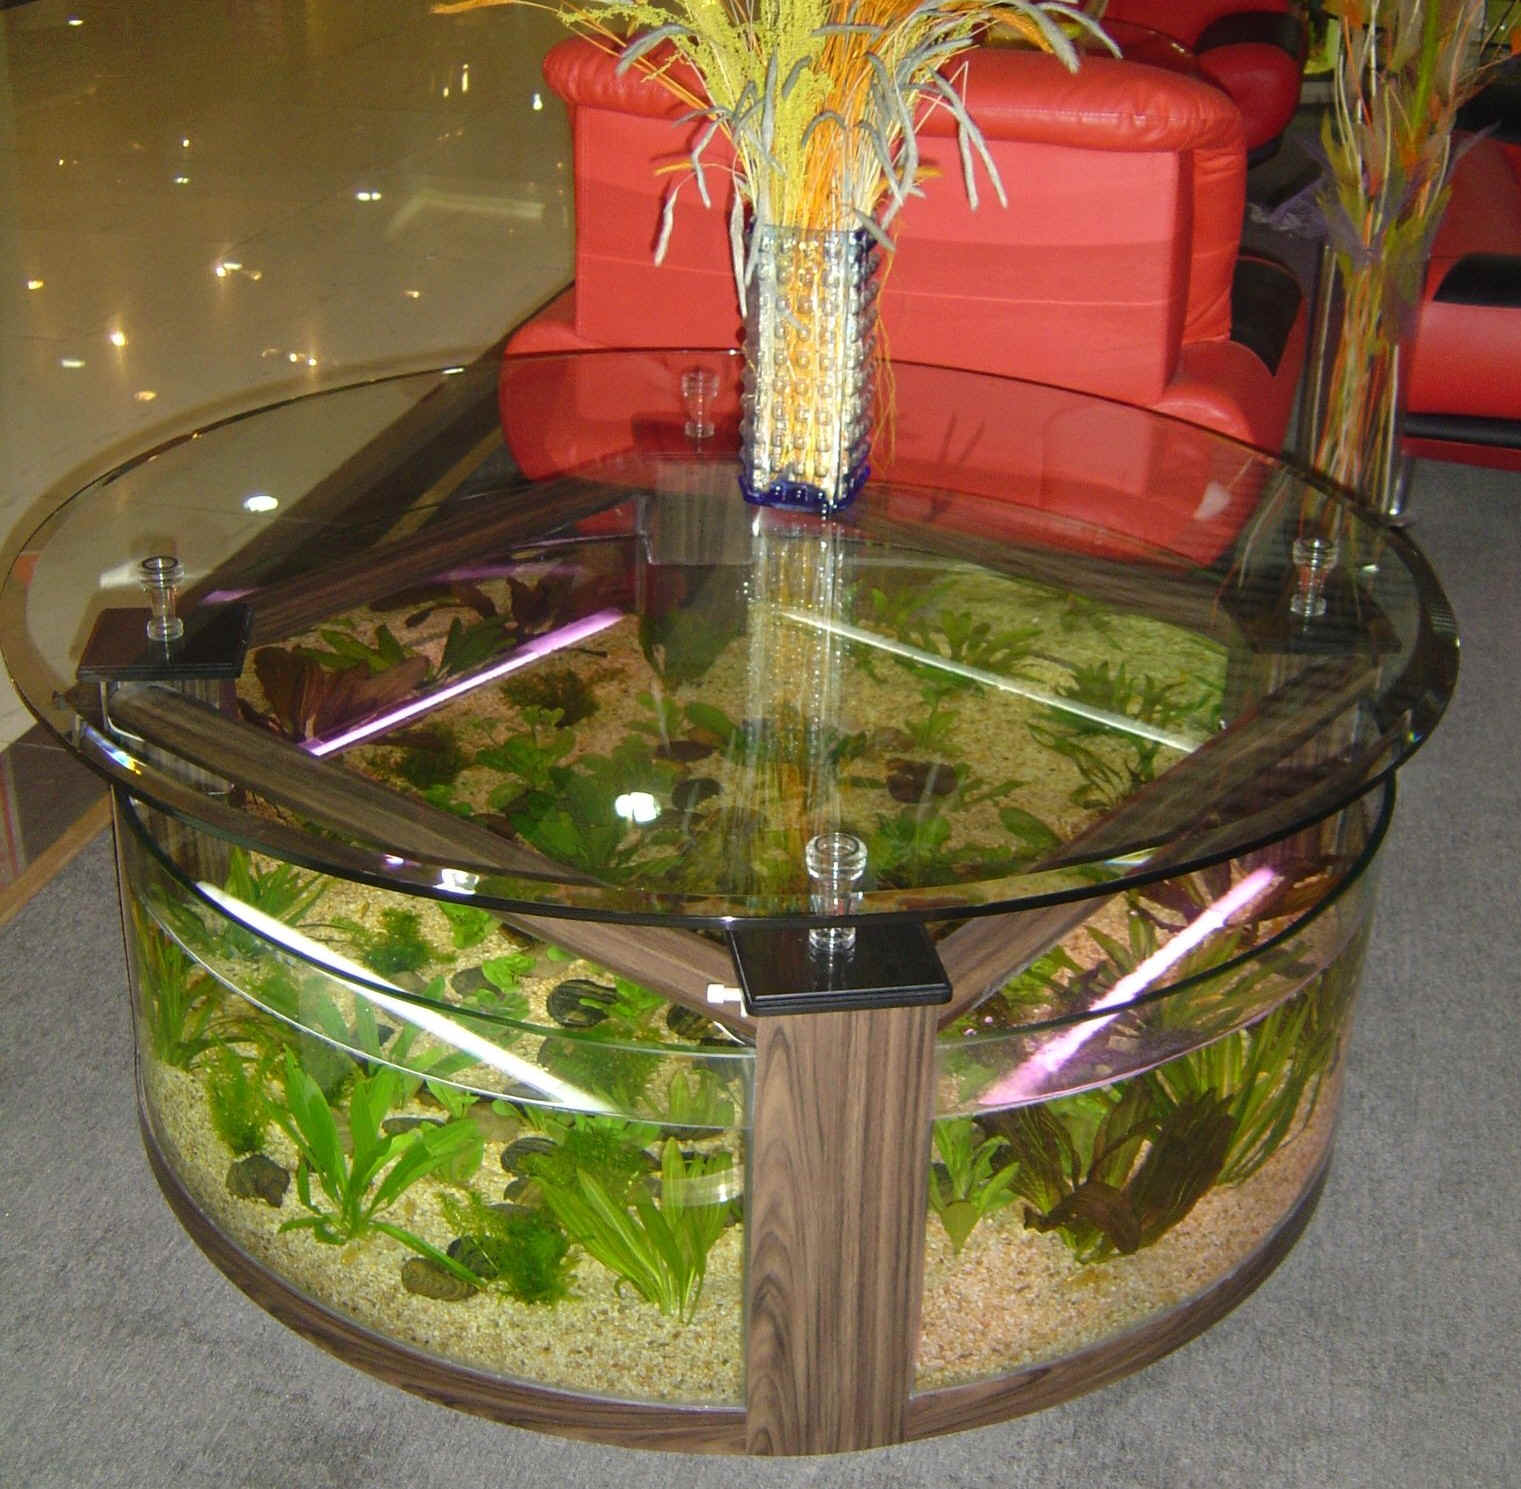 Www 4fishtank com coffee table aquariums new york